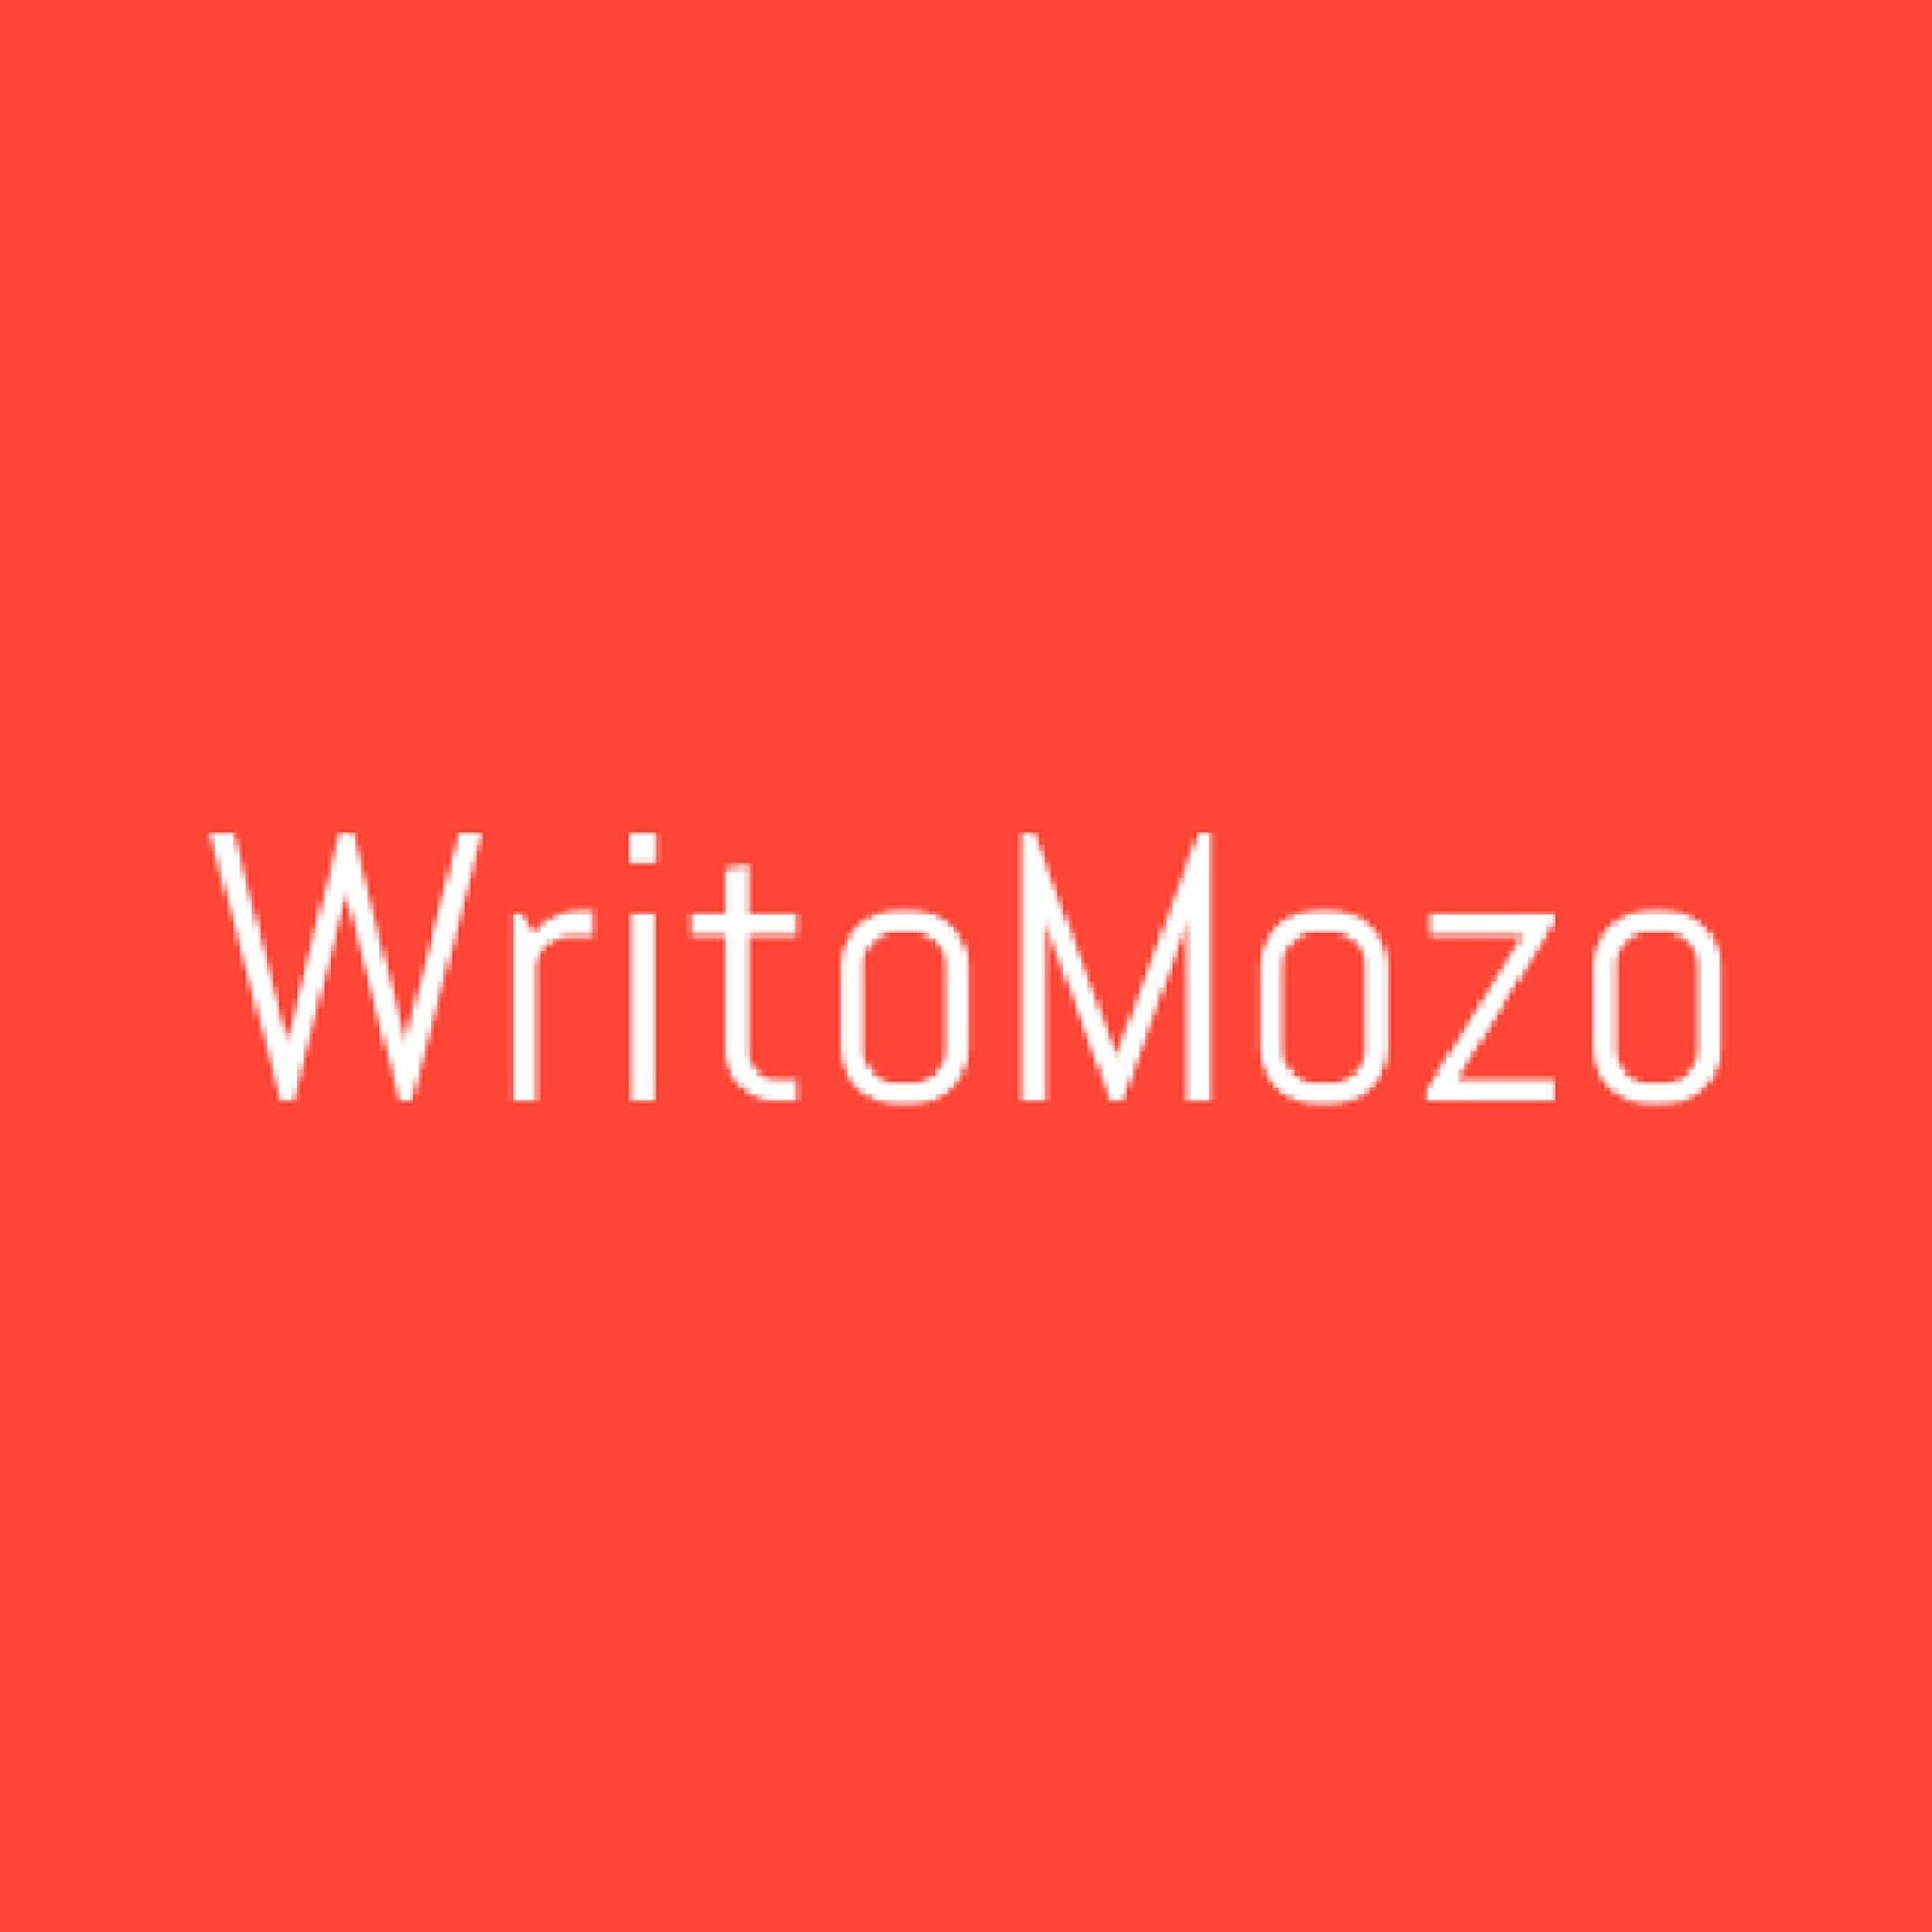 WritoMozo